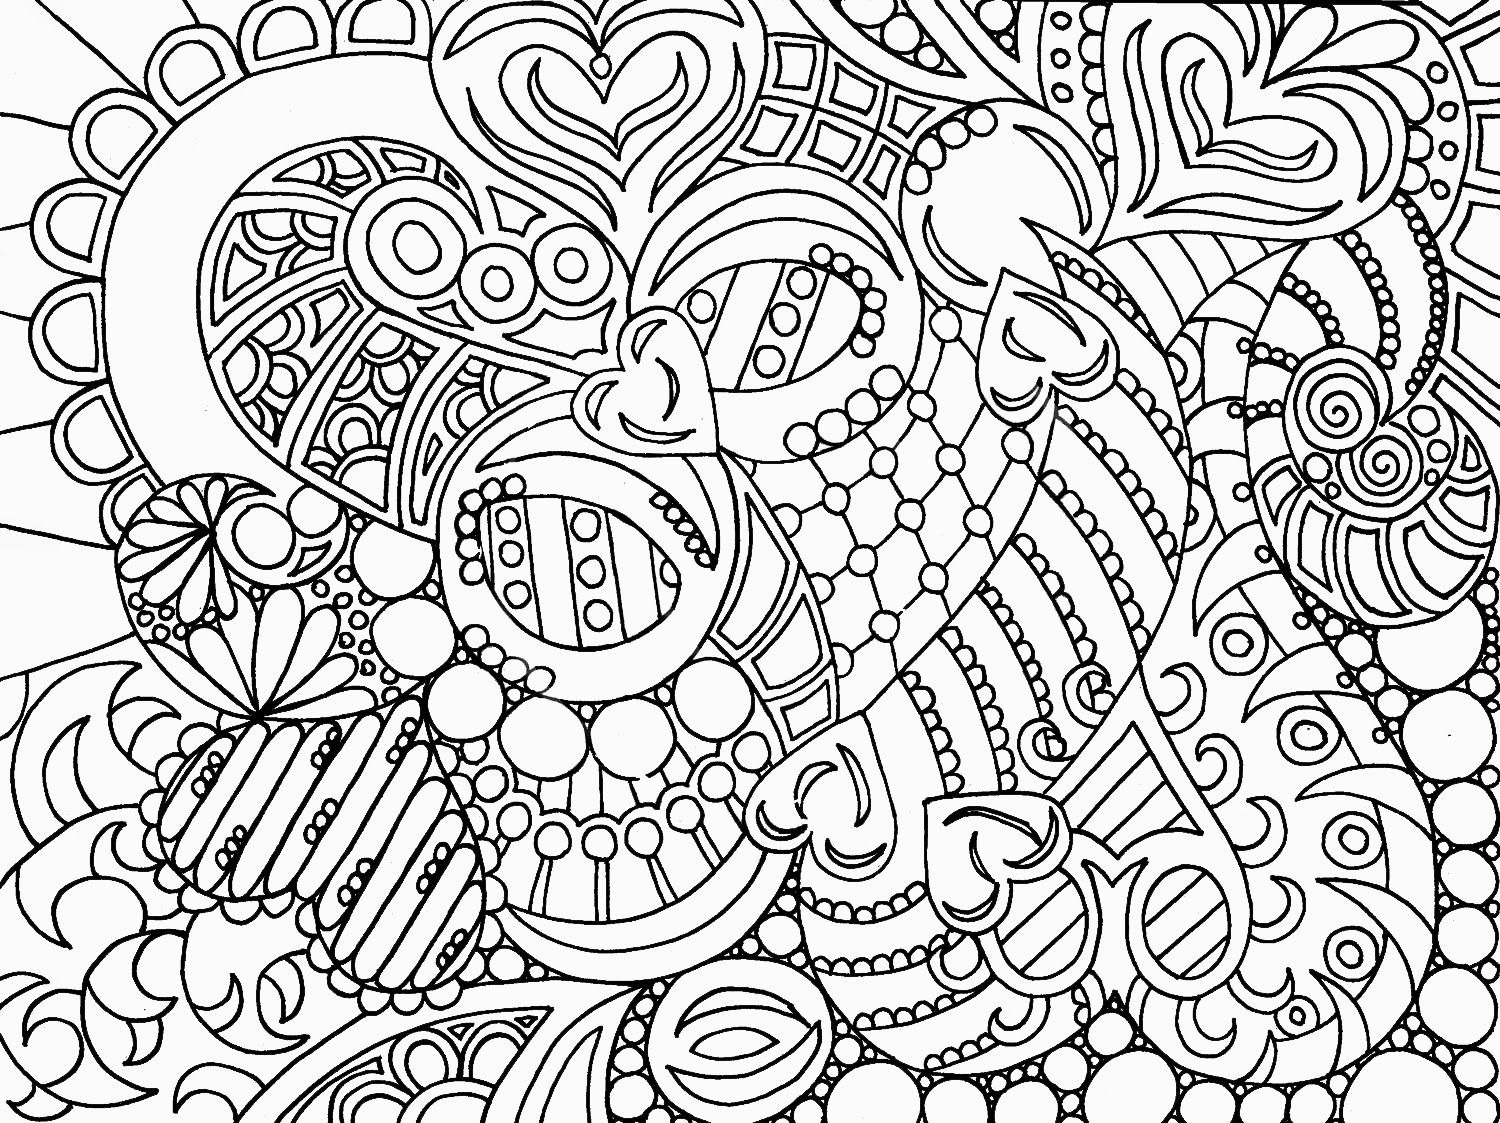 Coloring pages 6 year olds - Printable Adult Coloring Pages Coloring Pages For Adults Free Coloring Pages Coloring Books Coloring Pages To Print Printable Christmas Coloring Pages